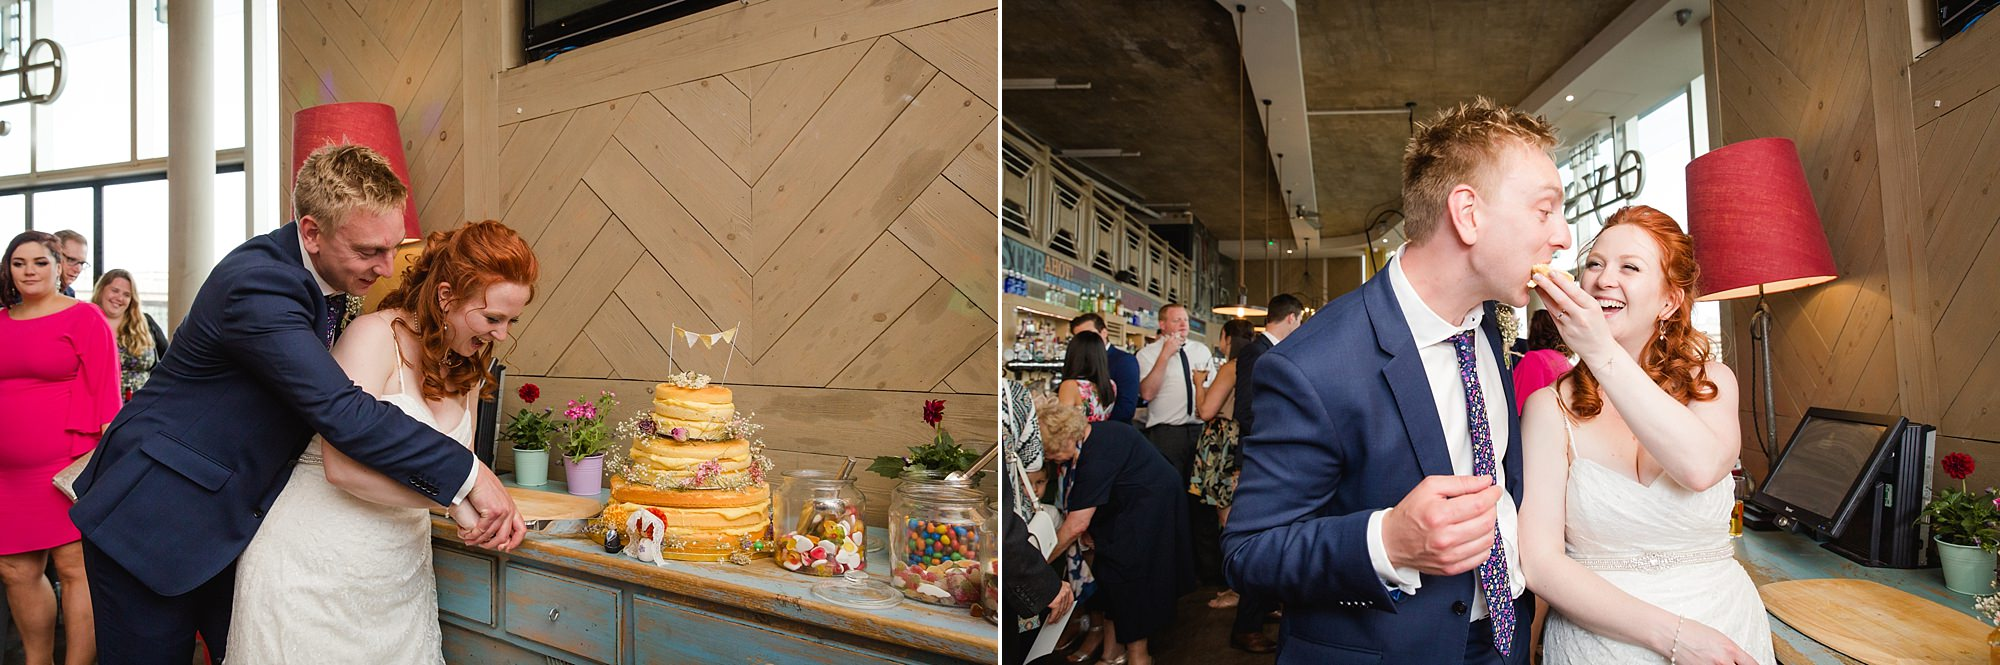 oyster shed wedding fun portrait of bride and groom cutting cake